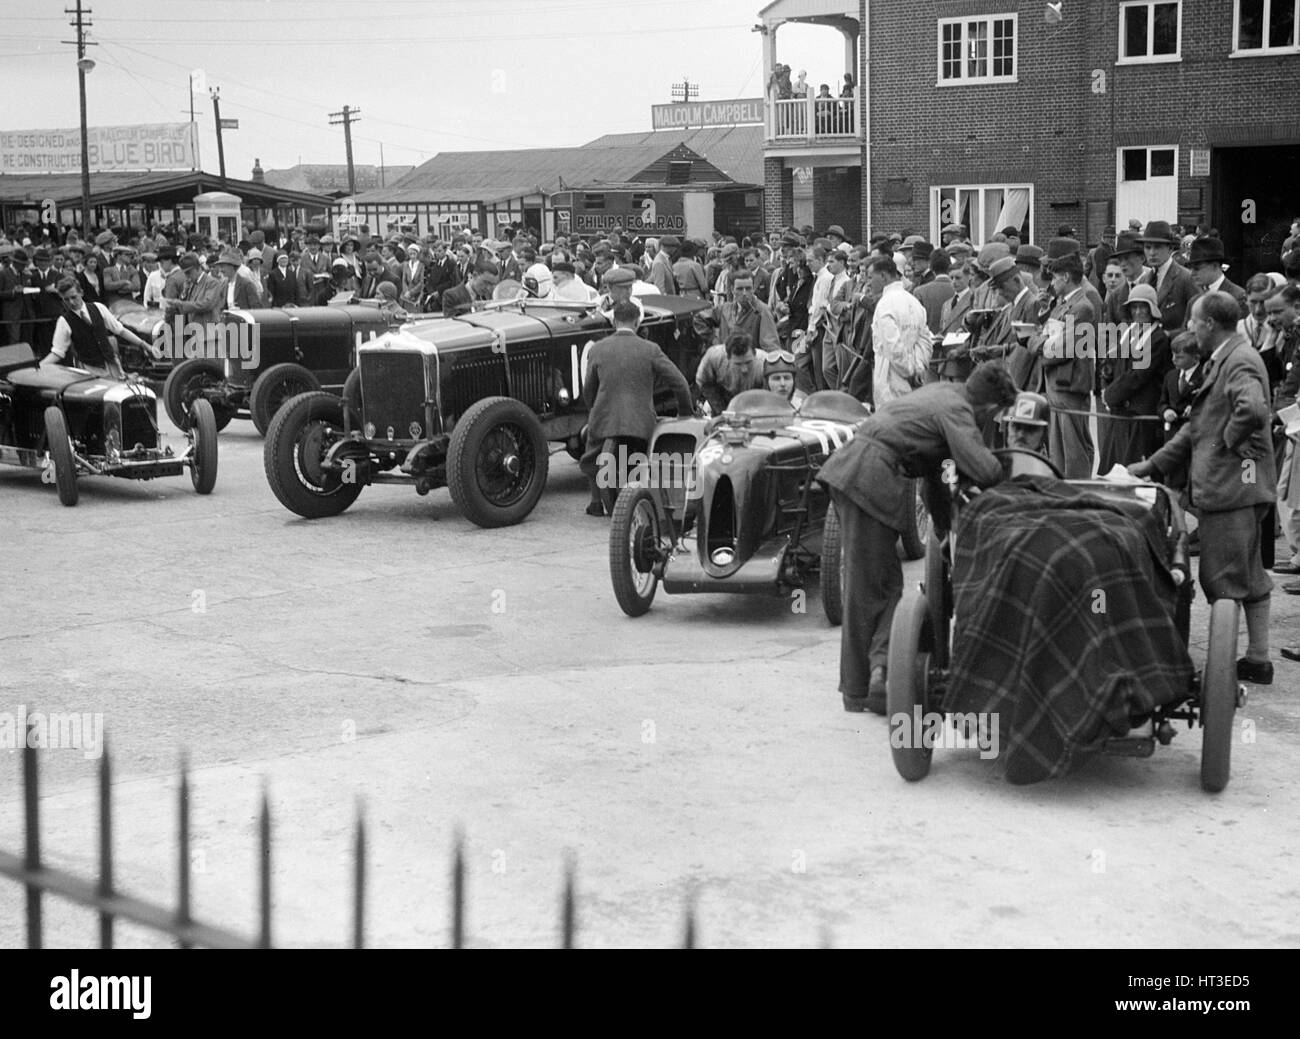 Racing cars at Brooklands. Artist: Bill Brunell. - Stock Image